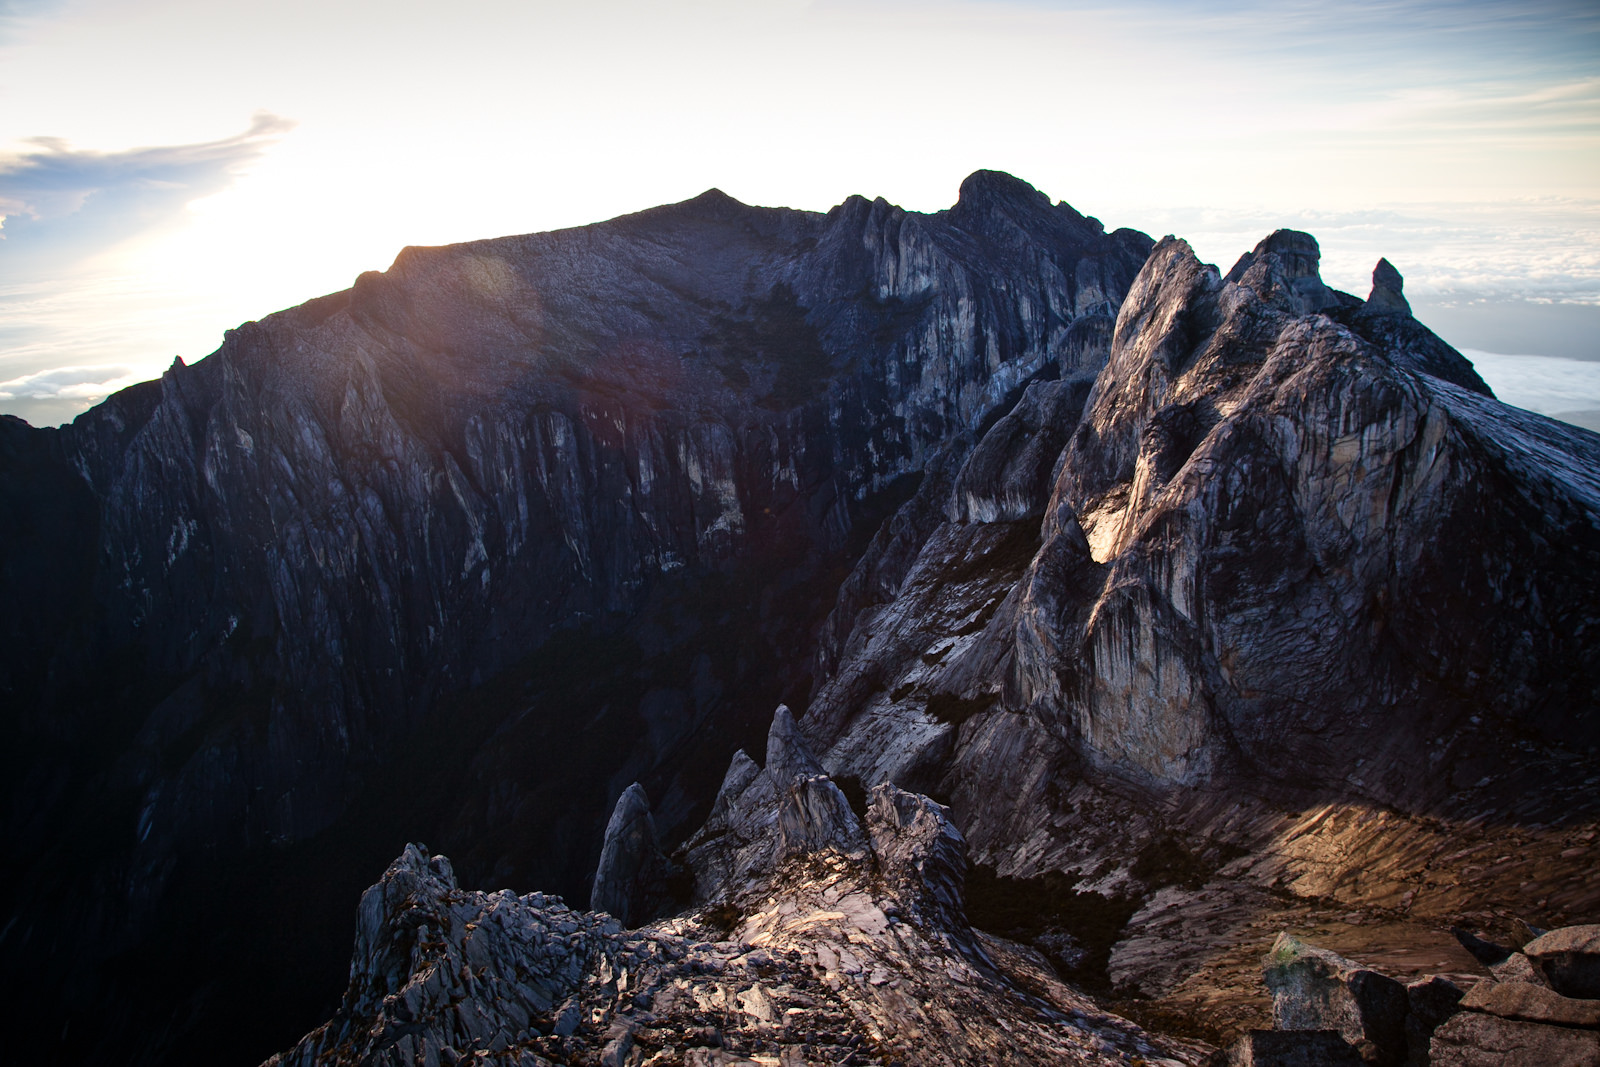 The peak of Mount Kinabalu